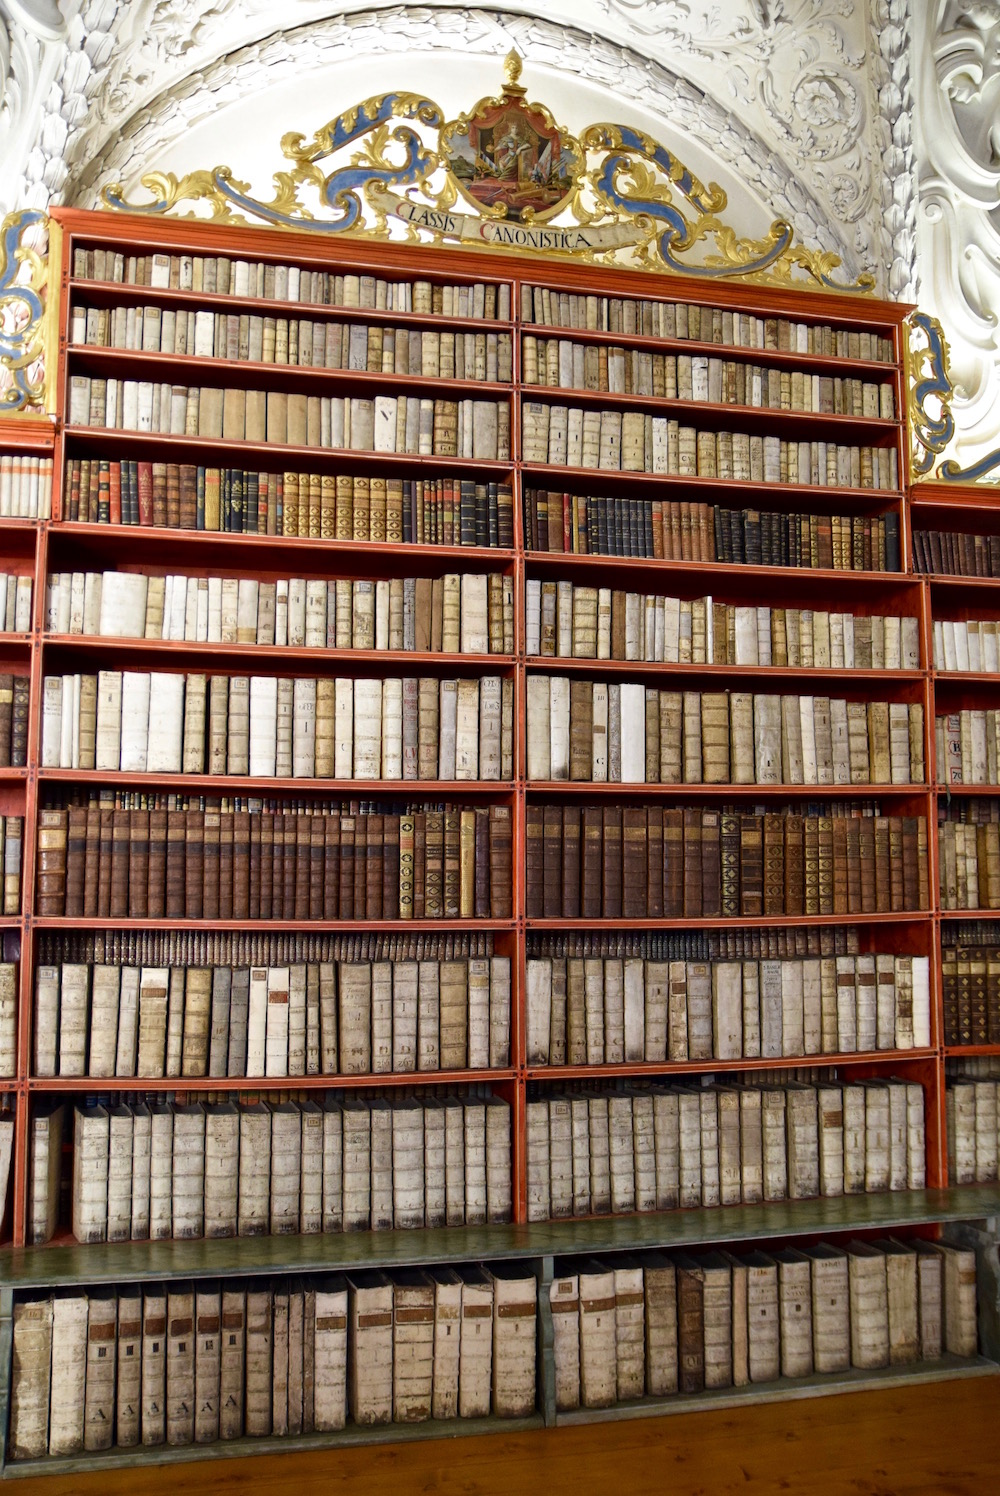 Prague book library.jpg